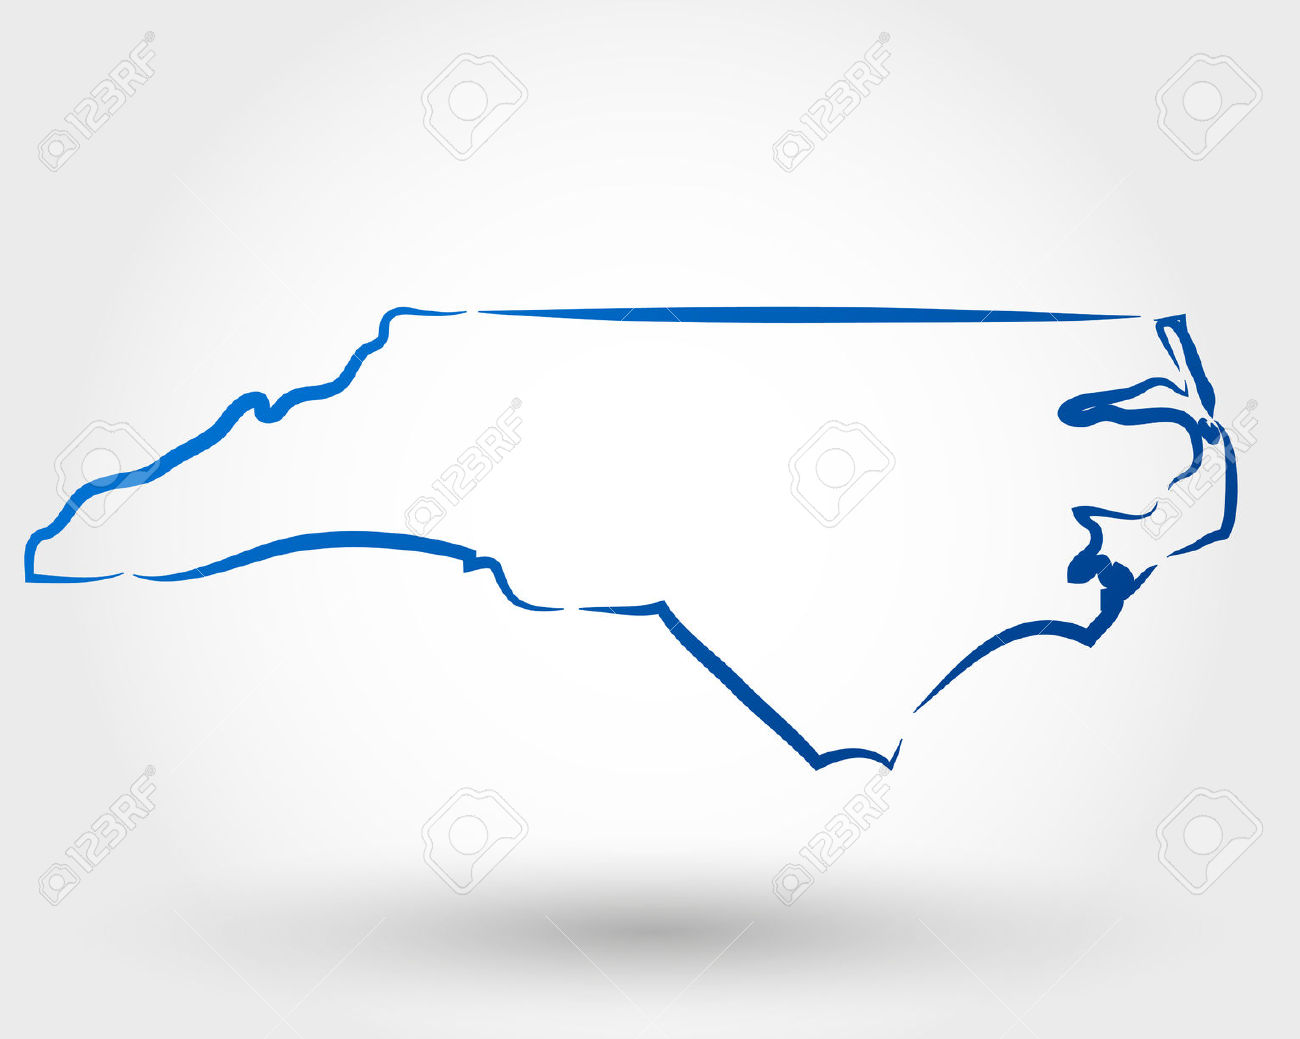 North carolina map clipart cartoon picture black and white download North carolina outline clipart - ClipartFest picture black and white download